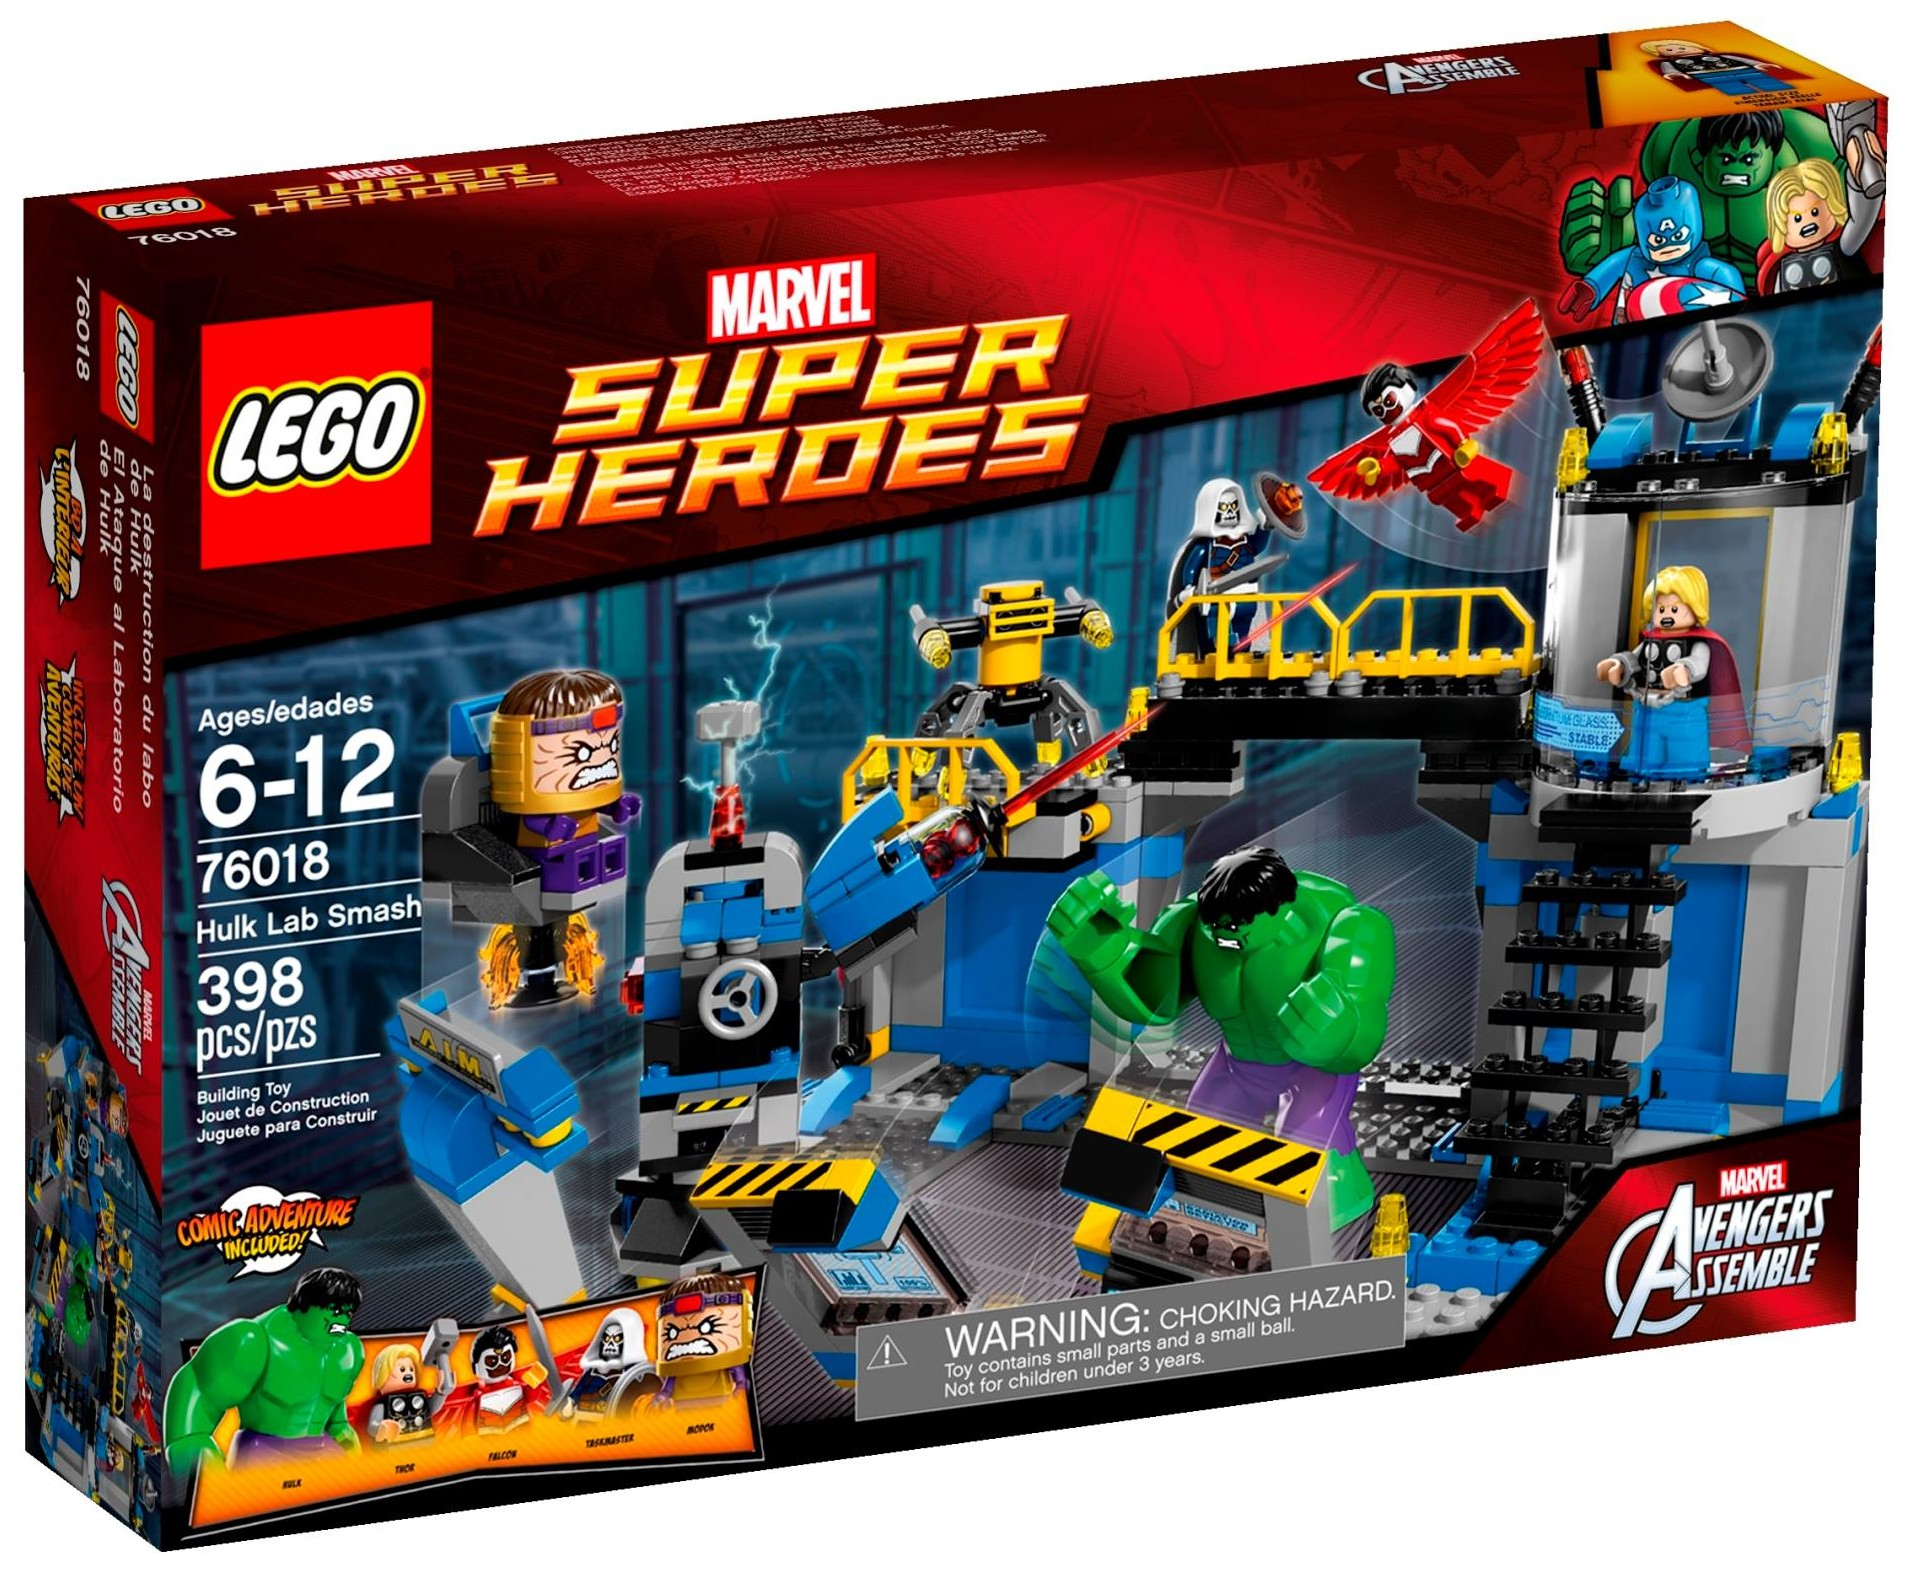 marvel super heroes lego set